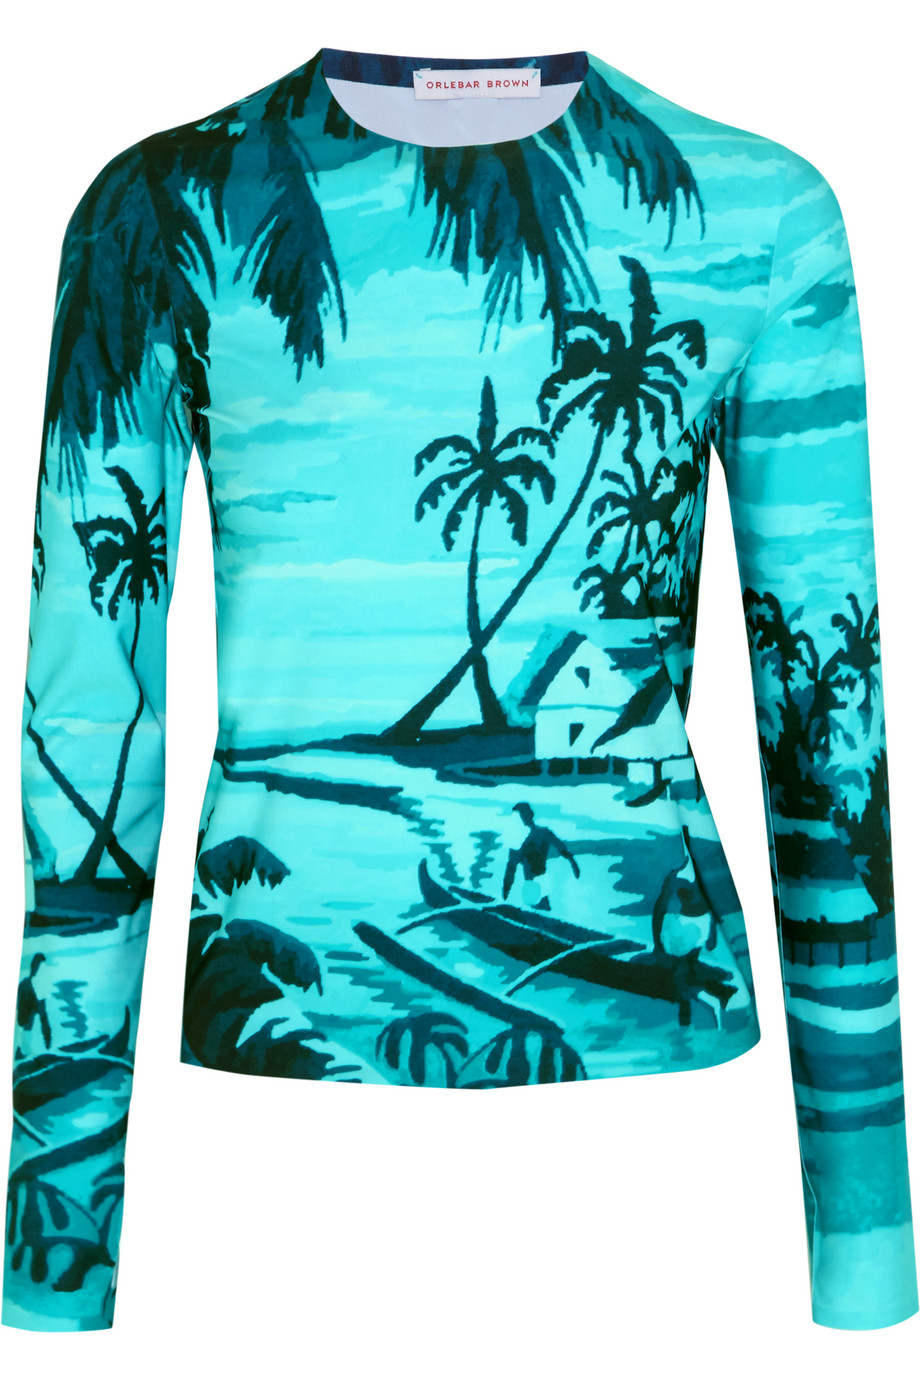 Orlebar Brown Luisa Printed Rash Guard, Azure, Size: XS